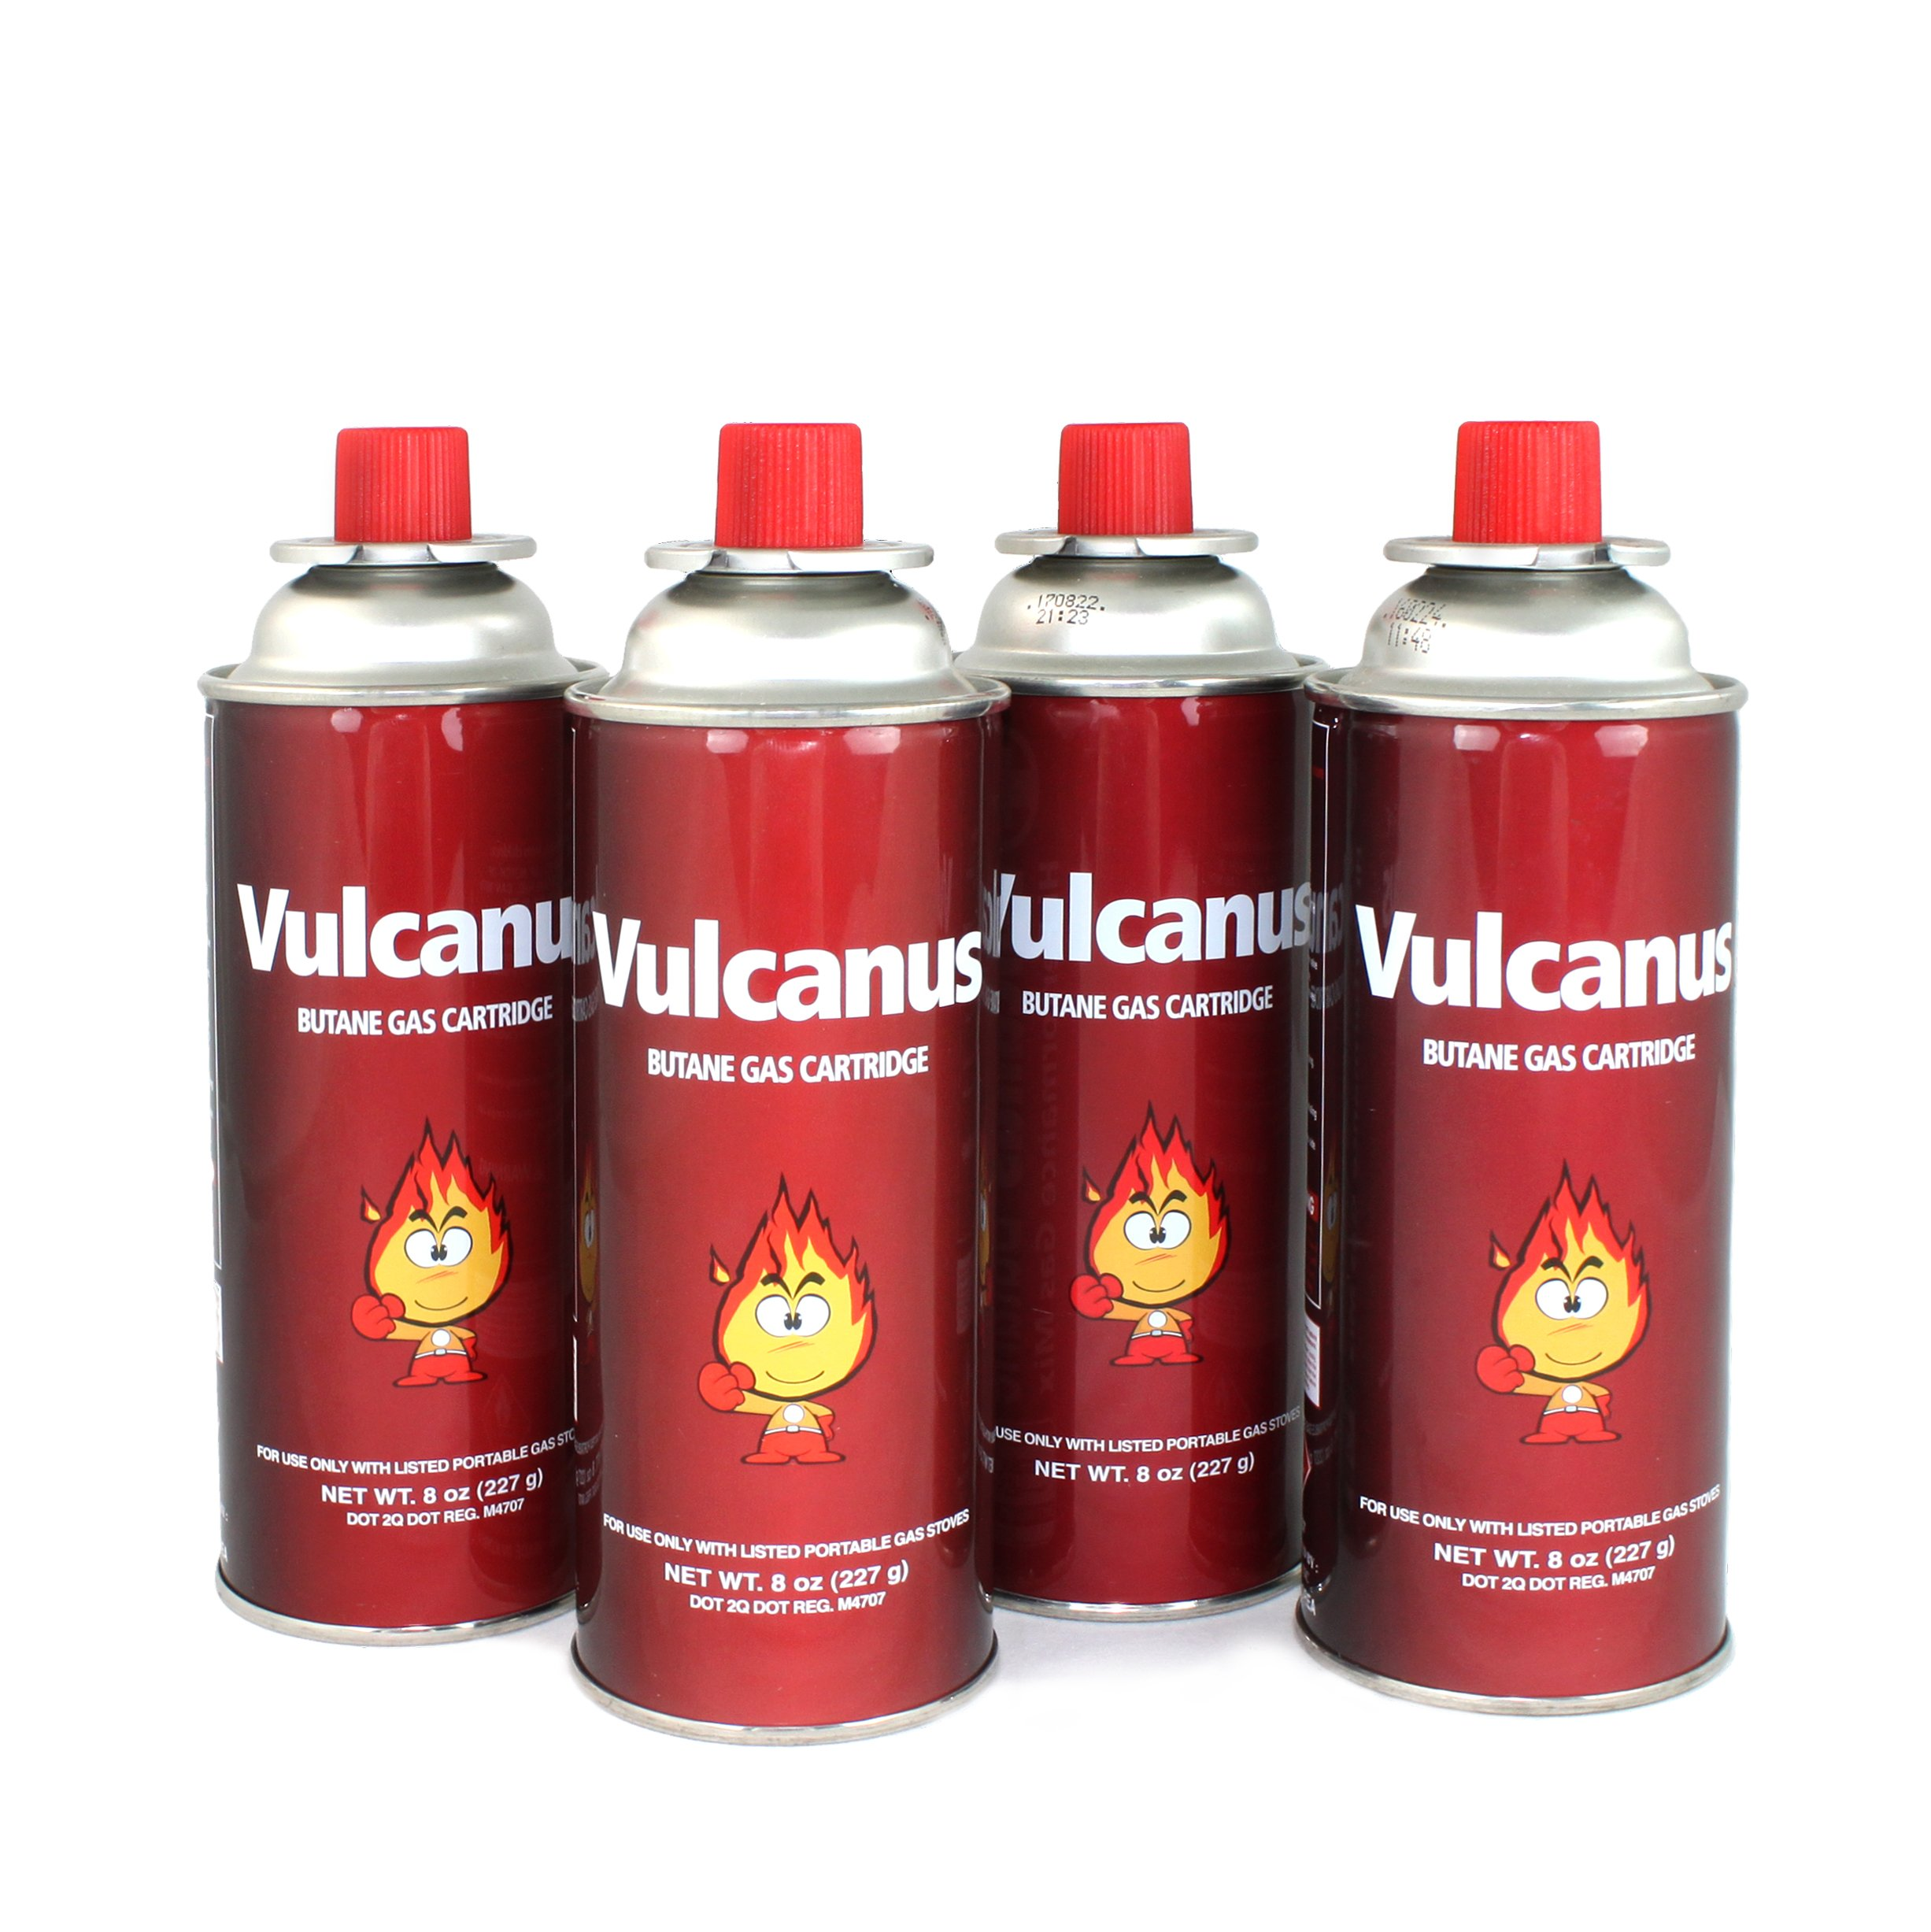 [ 4 Cans ] ROM AMERICA Vulcanus Butane Gas Cartridge Fuel Canister Camping Stoves by VULCANUS